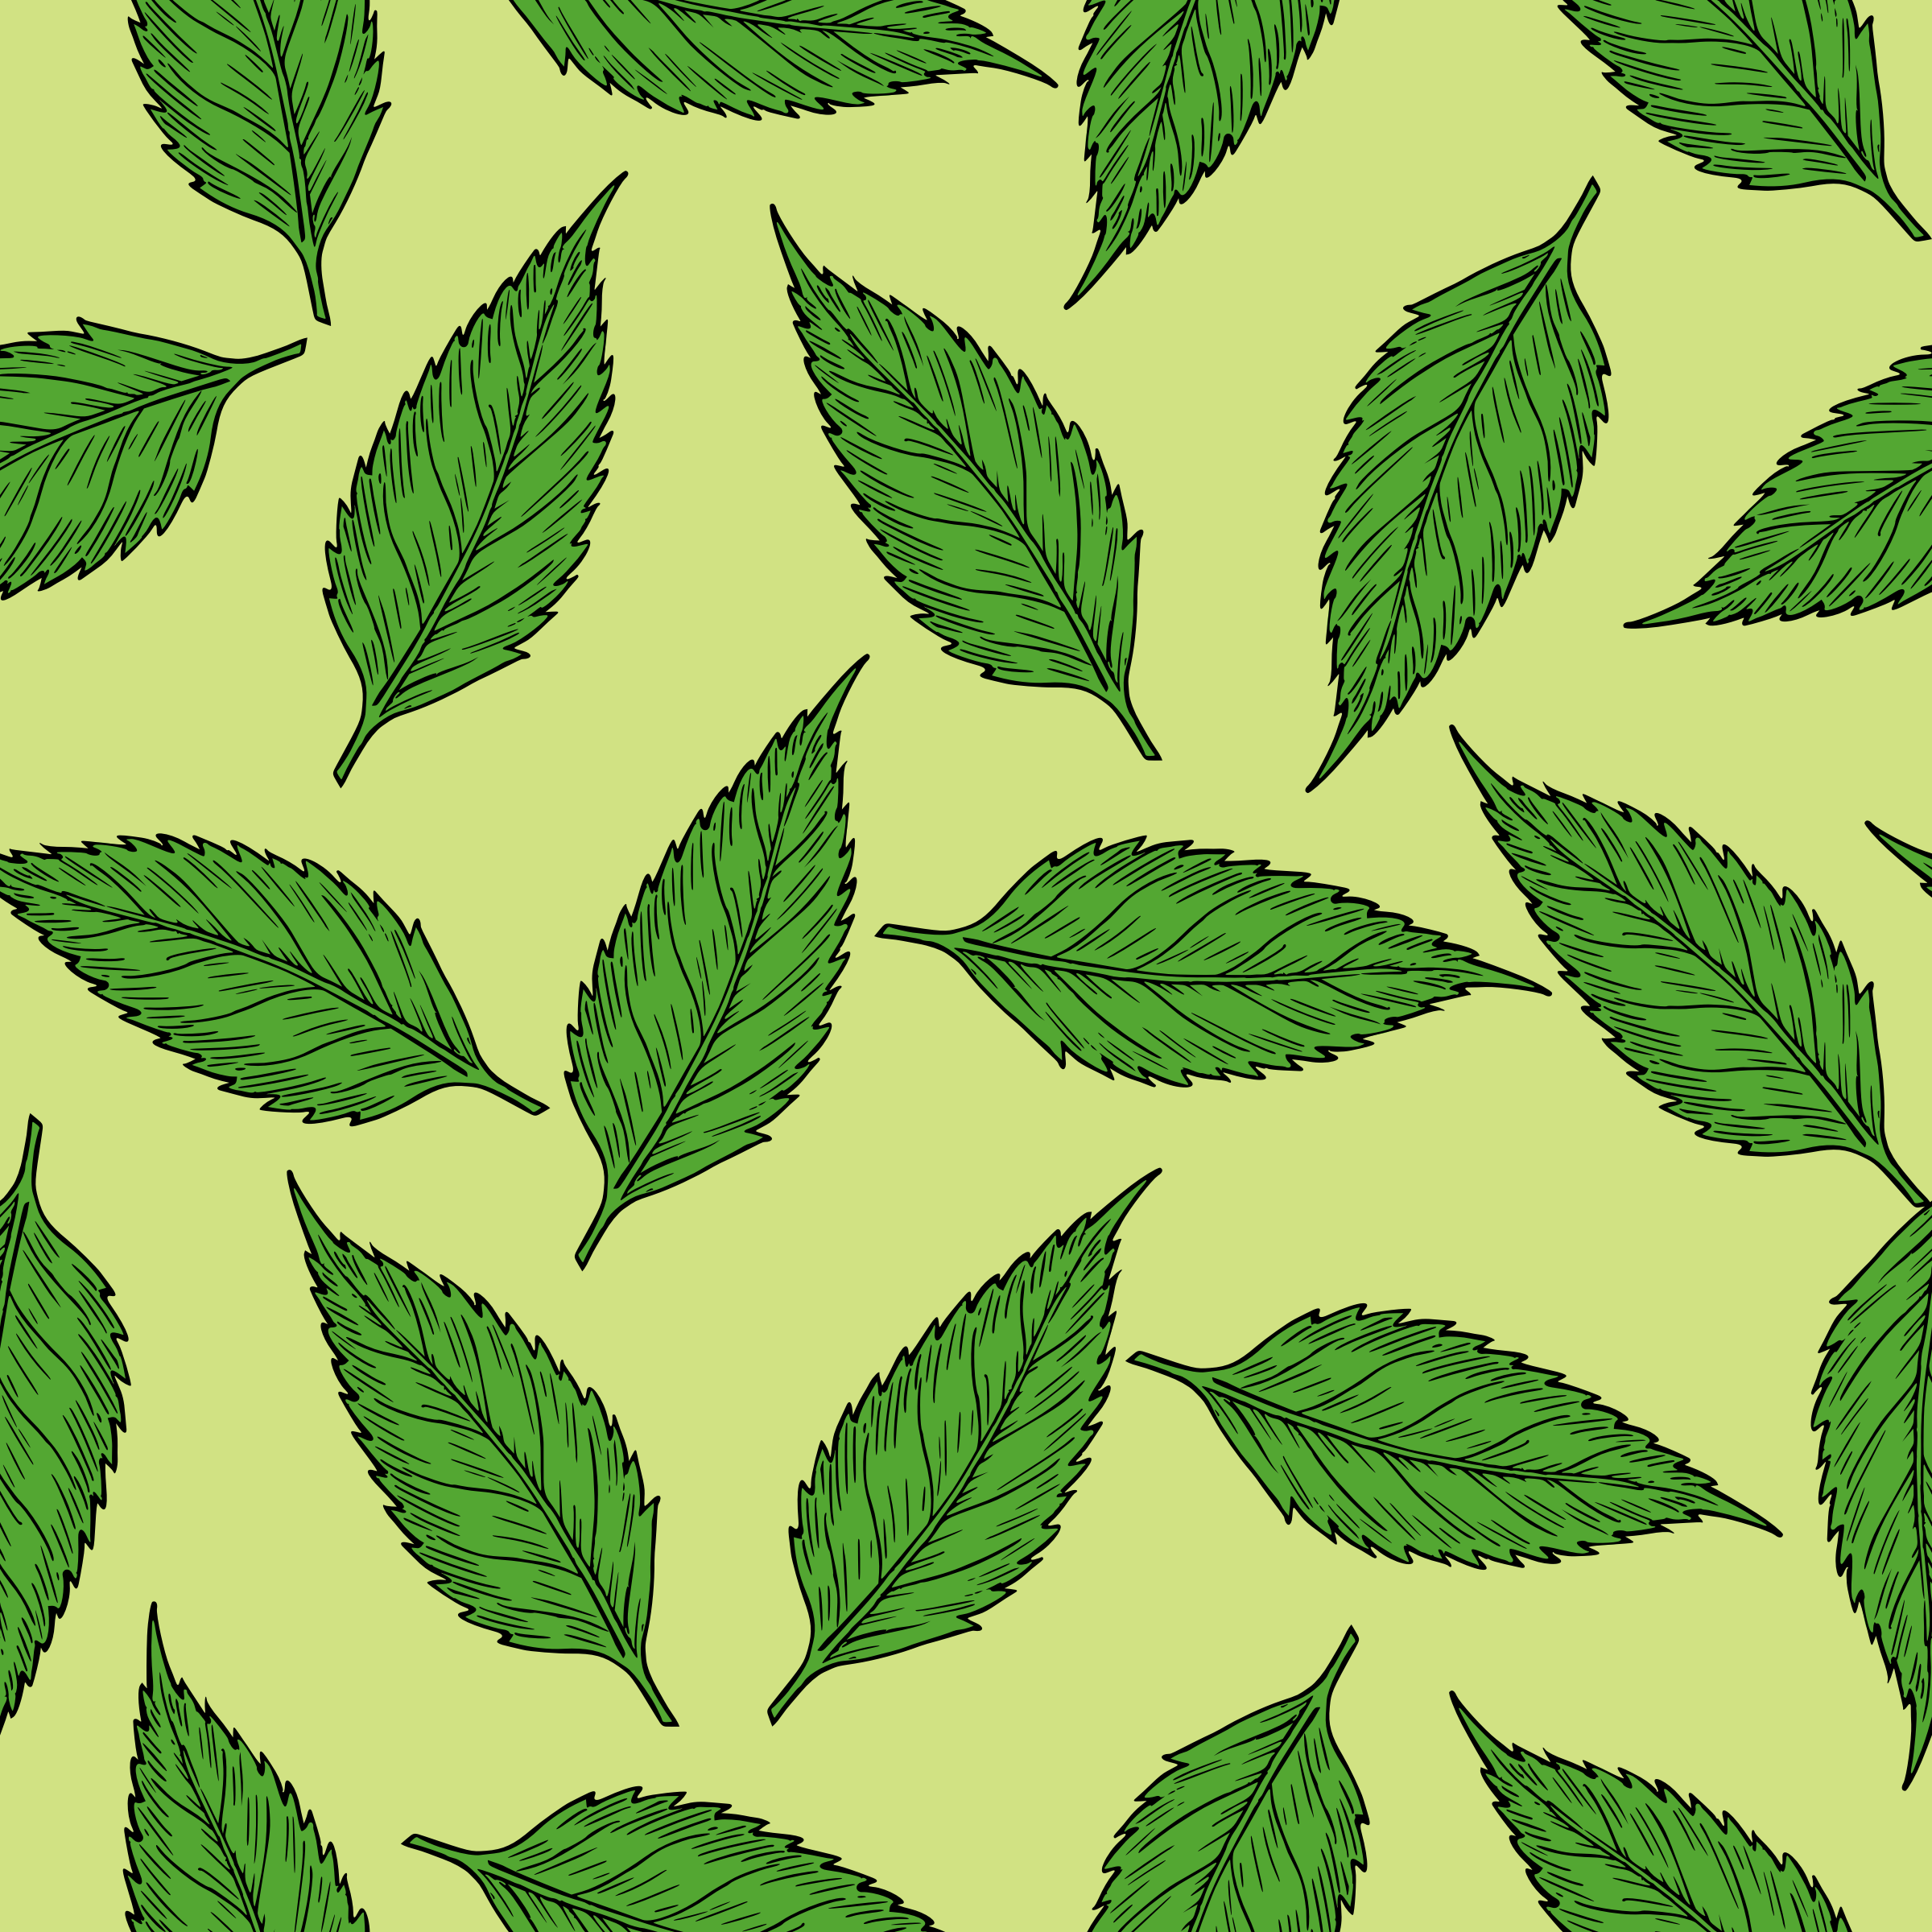 Green Leaves Pattern Vector Clipart Image Free Stock Photo